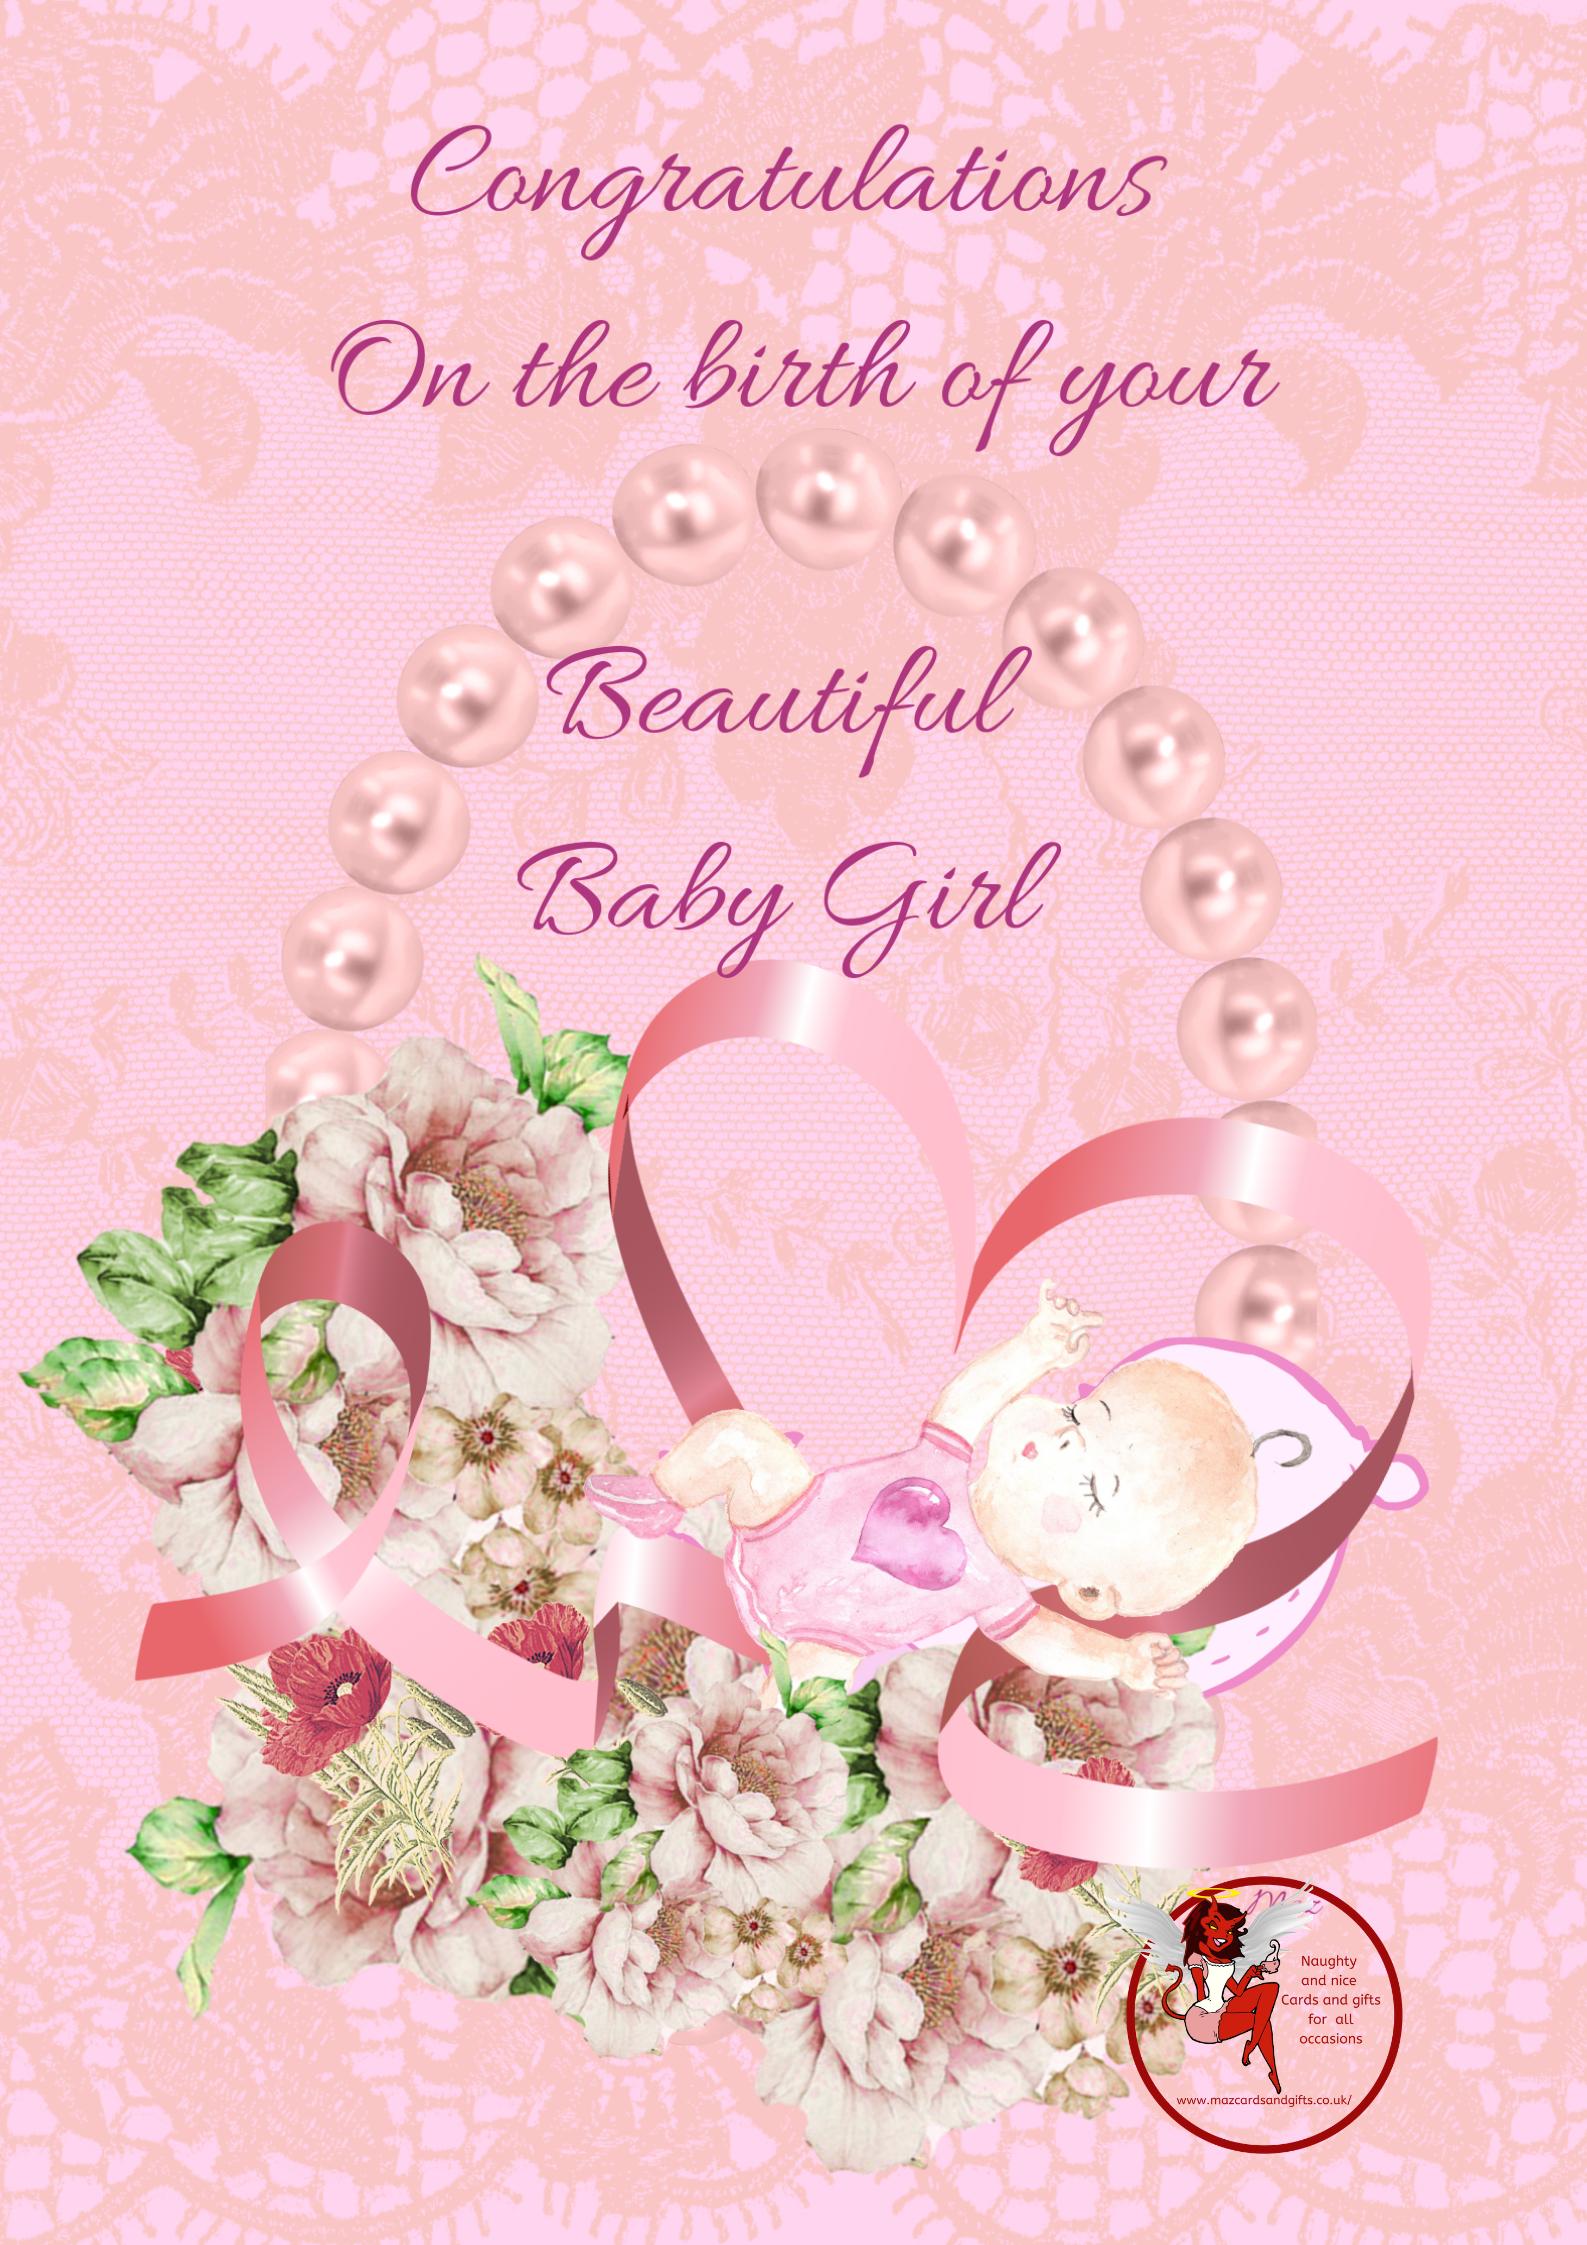 New Baby - Birth of a baby Girl - Flowers Pearls and ribbon - Order No 072